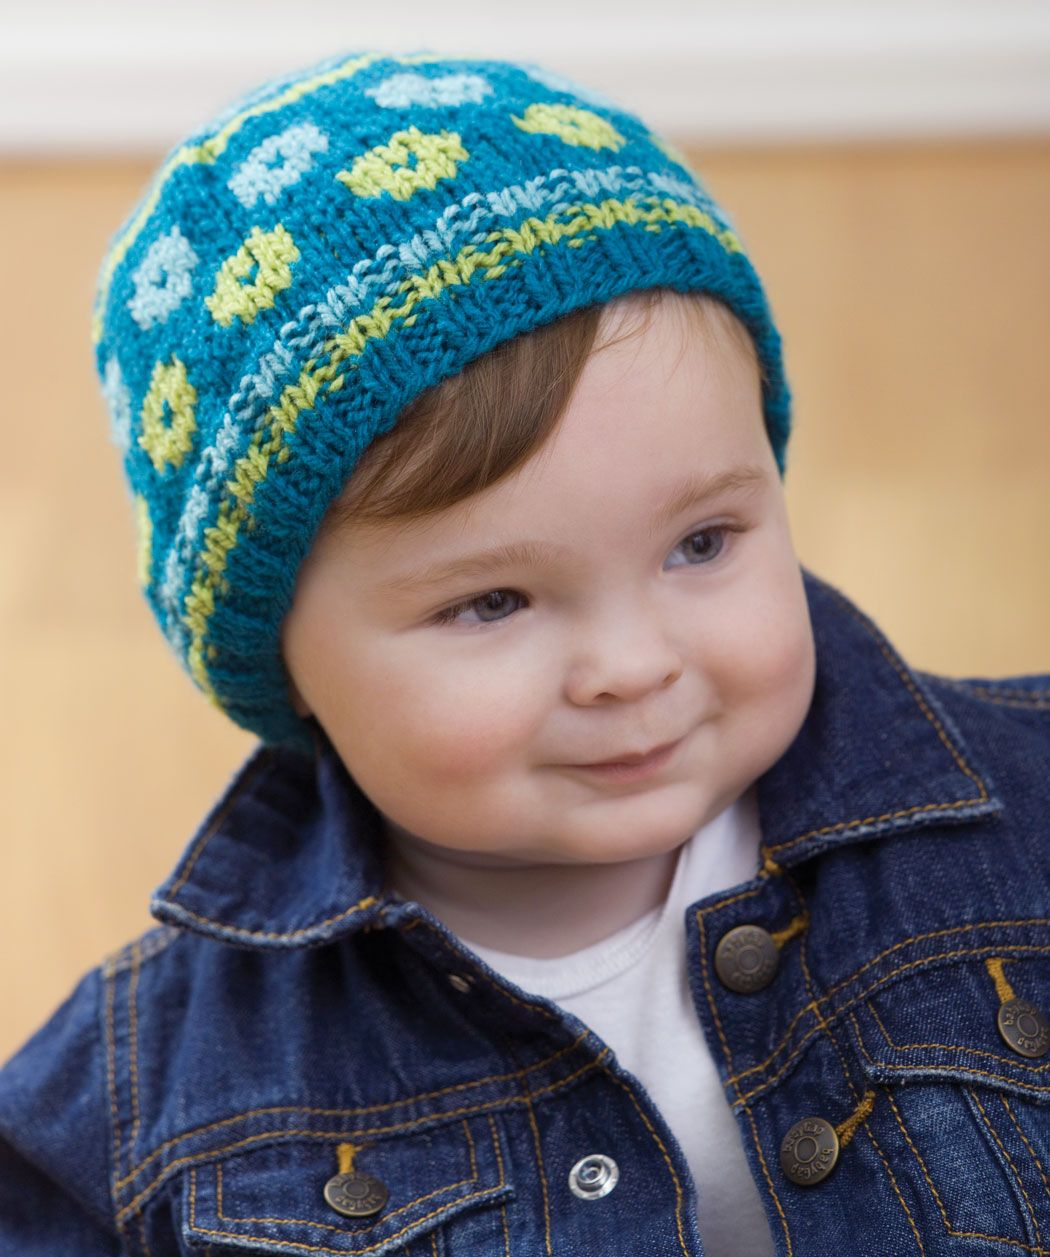 Knit Intarsia Baby Hat Knitting Pattern A little bit of color goes a ...